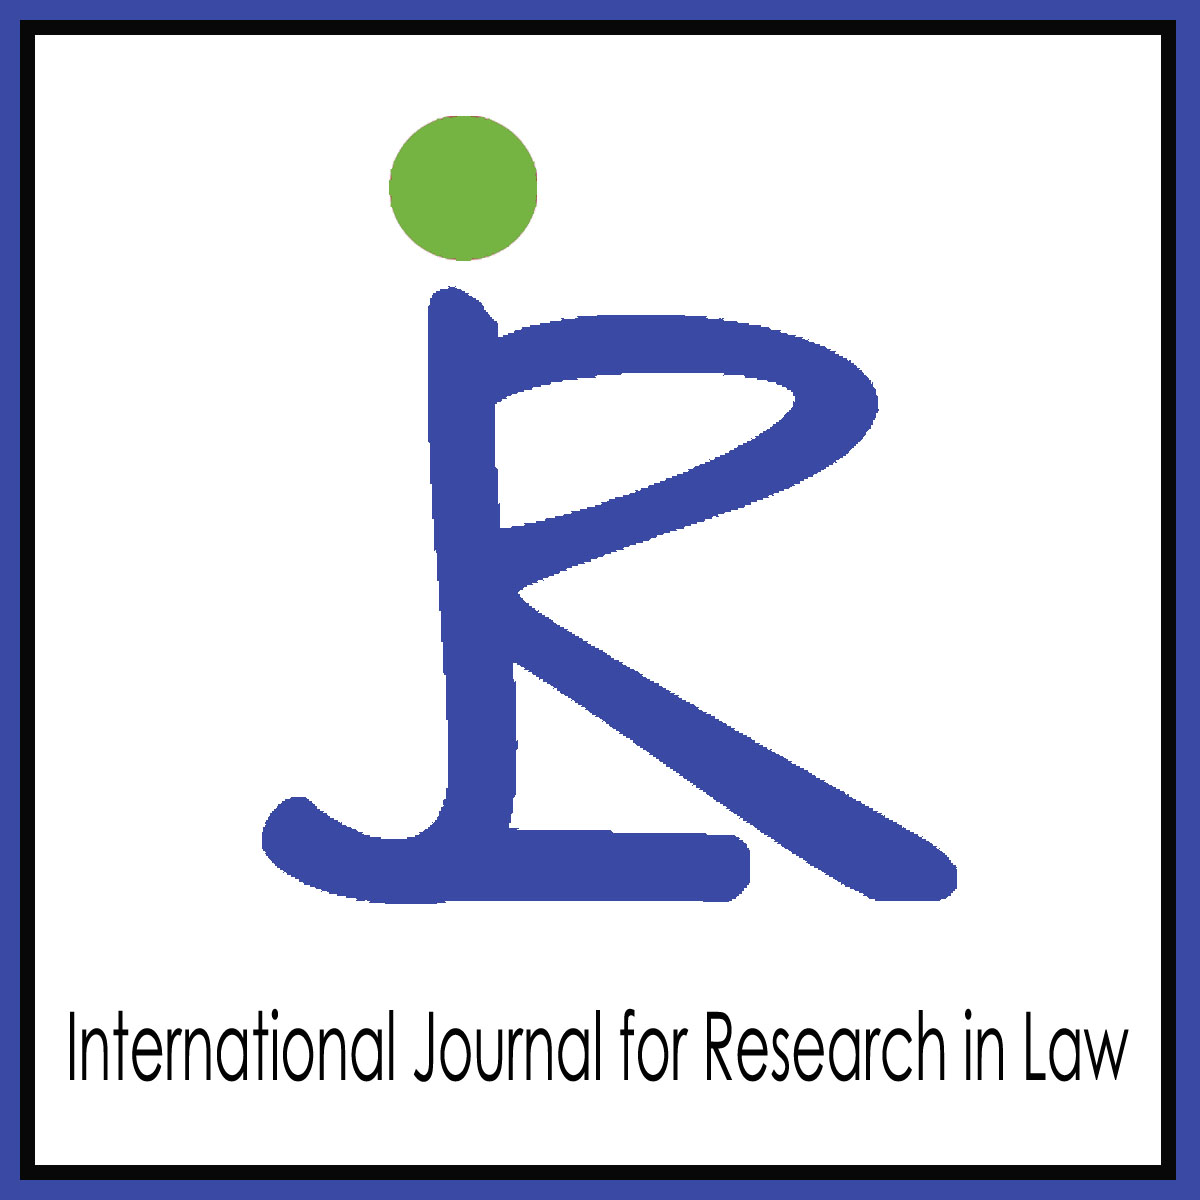 International journal for research in law volume 4 Issue 3